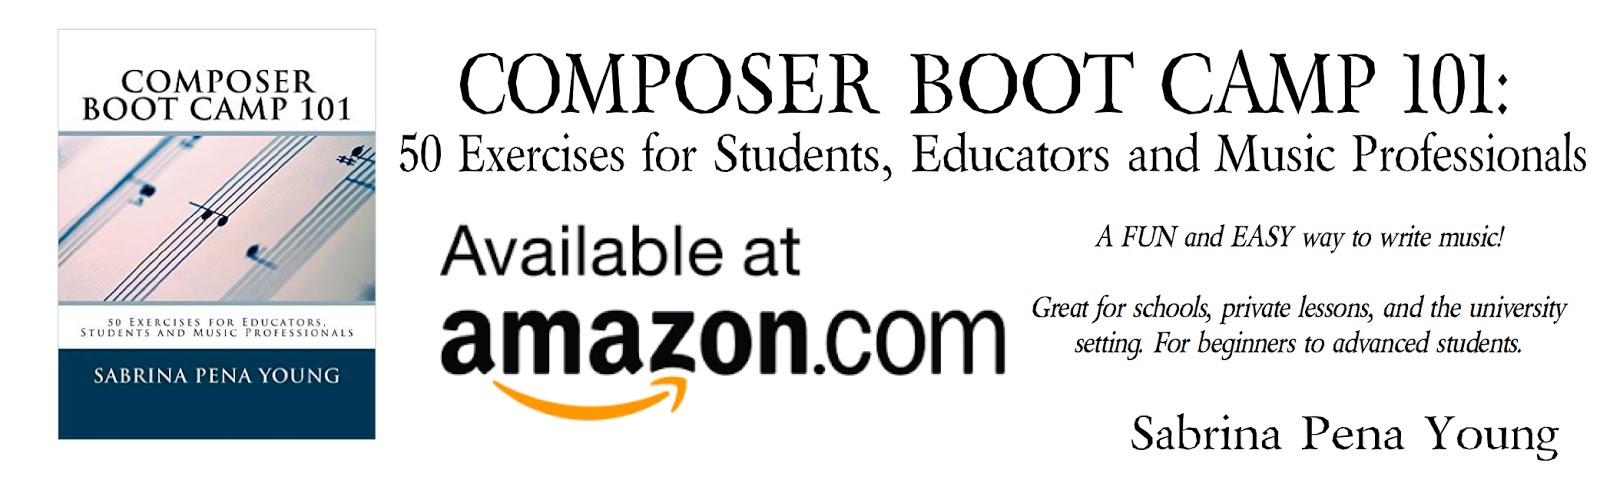 COMPOSER BOOT CAMP